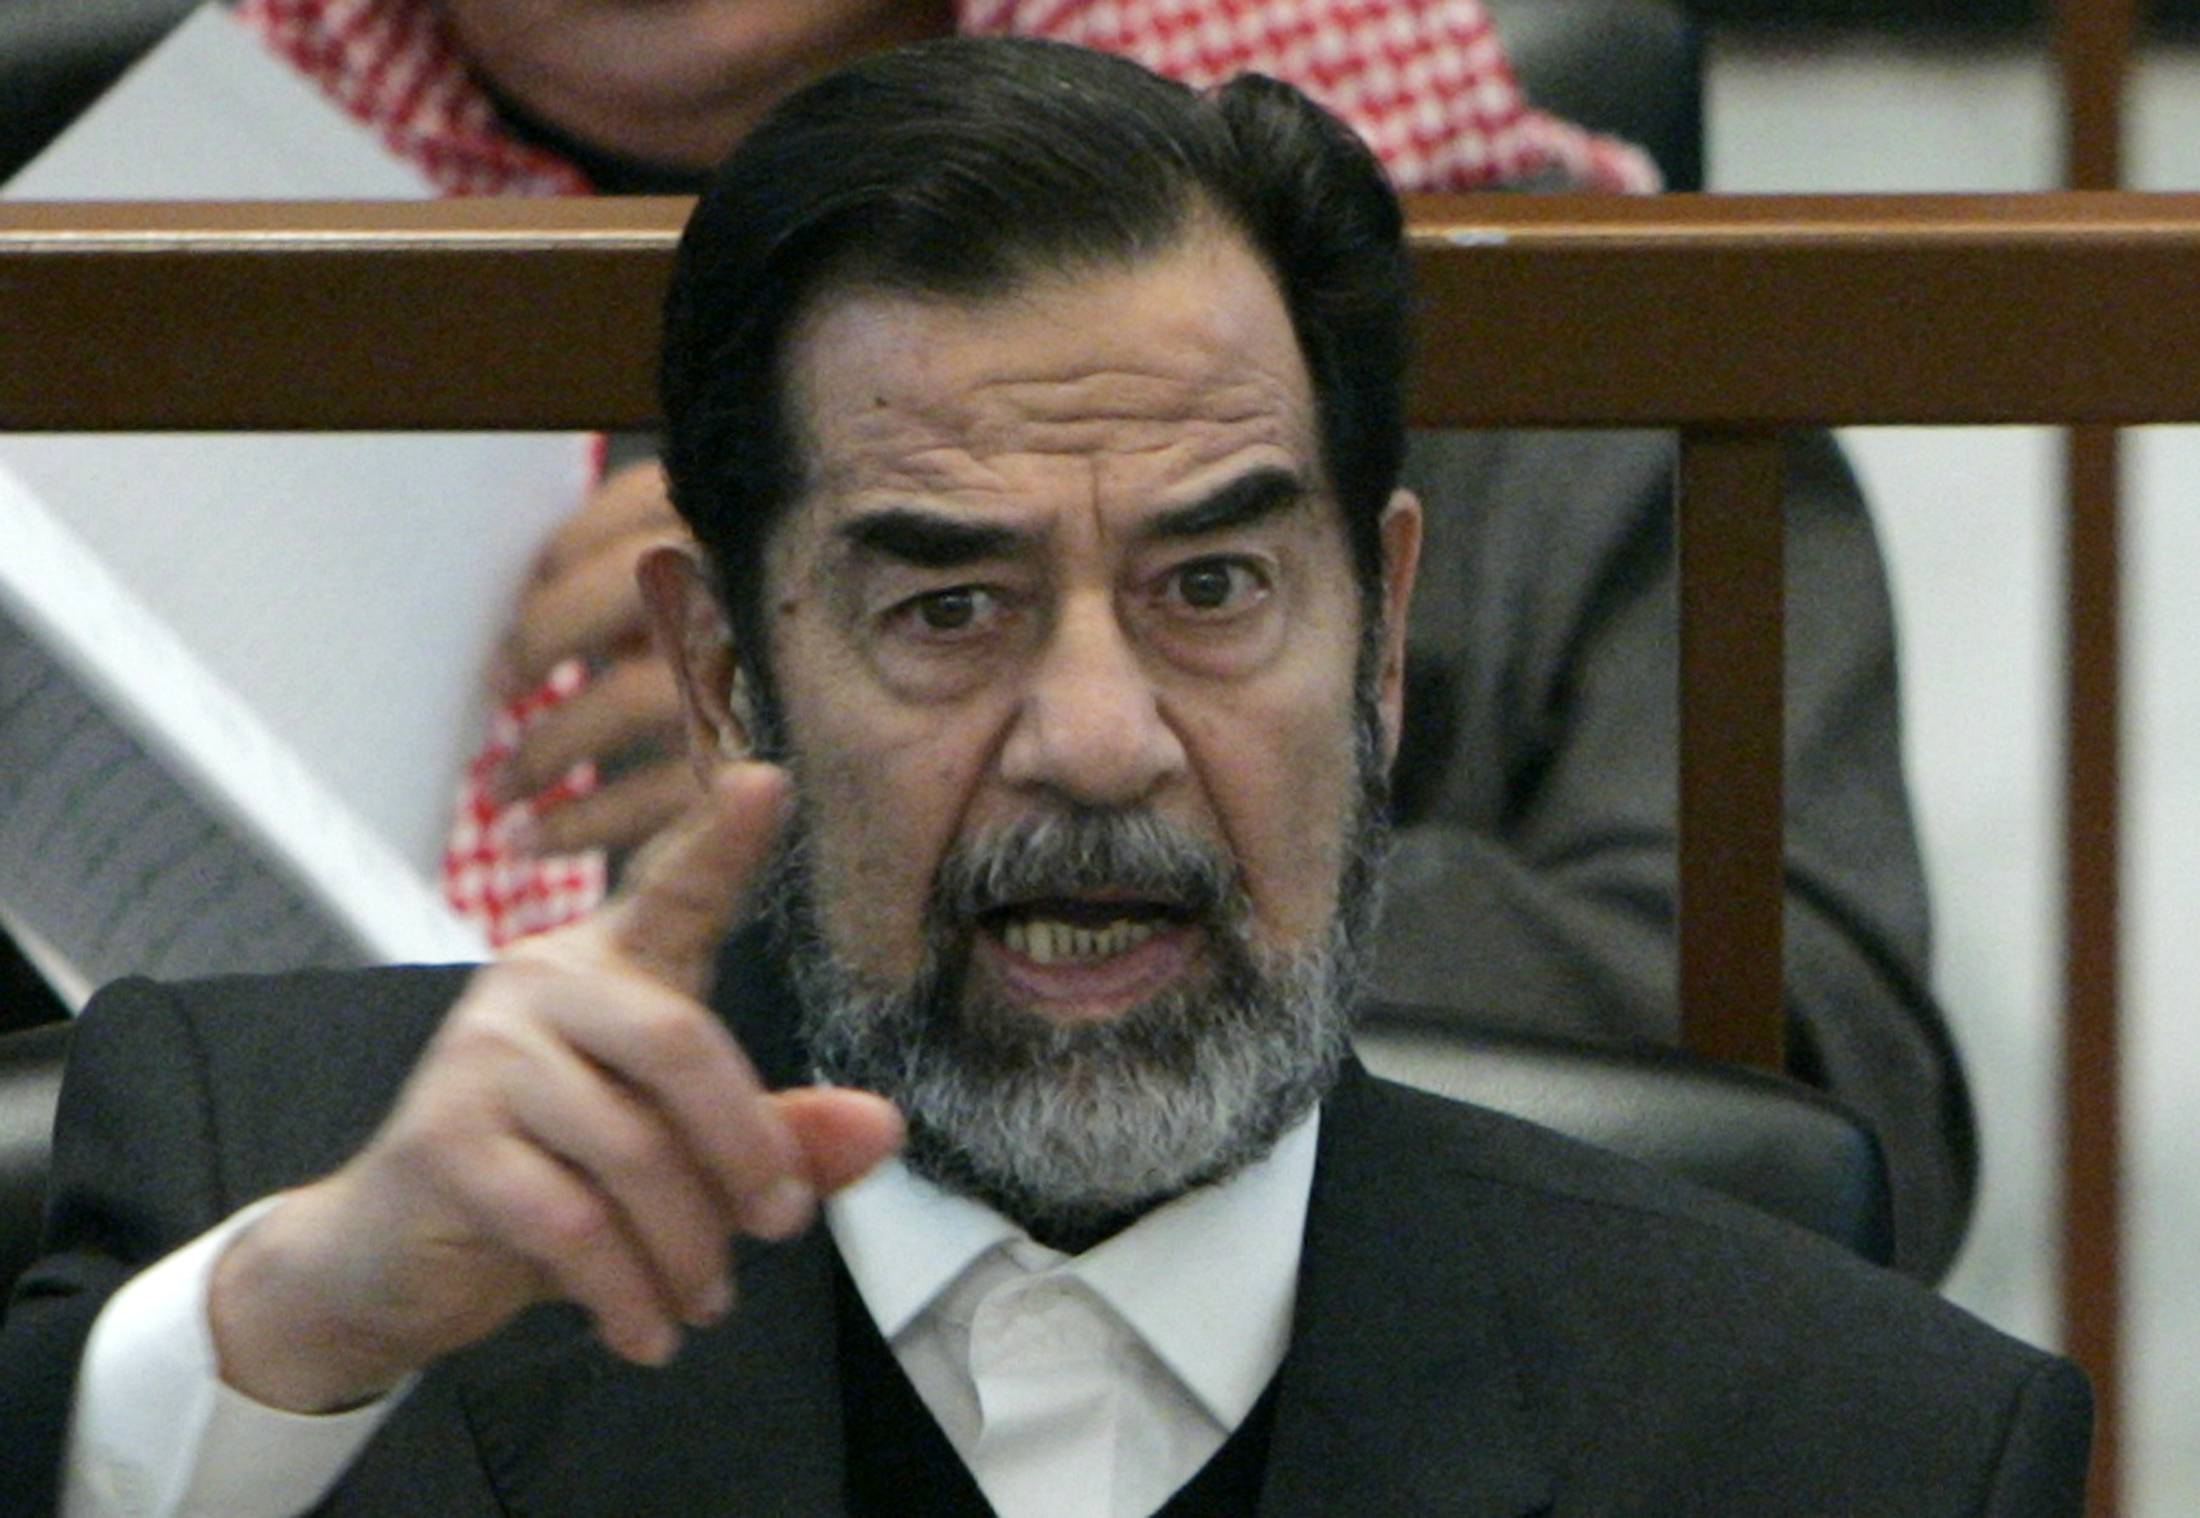 genocide in iraq in 1991 by saddam hussein